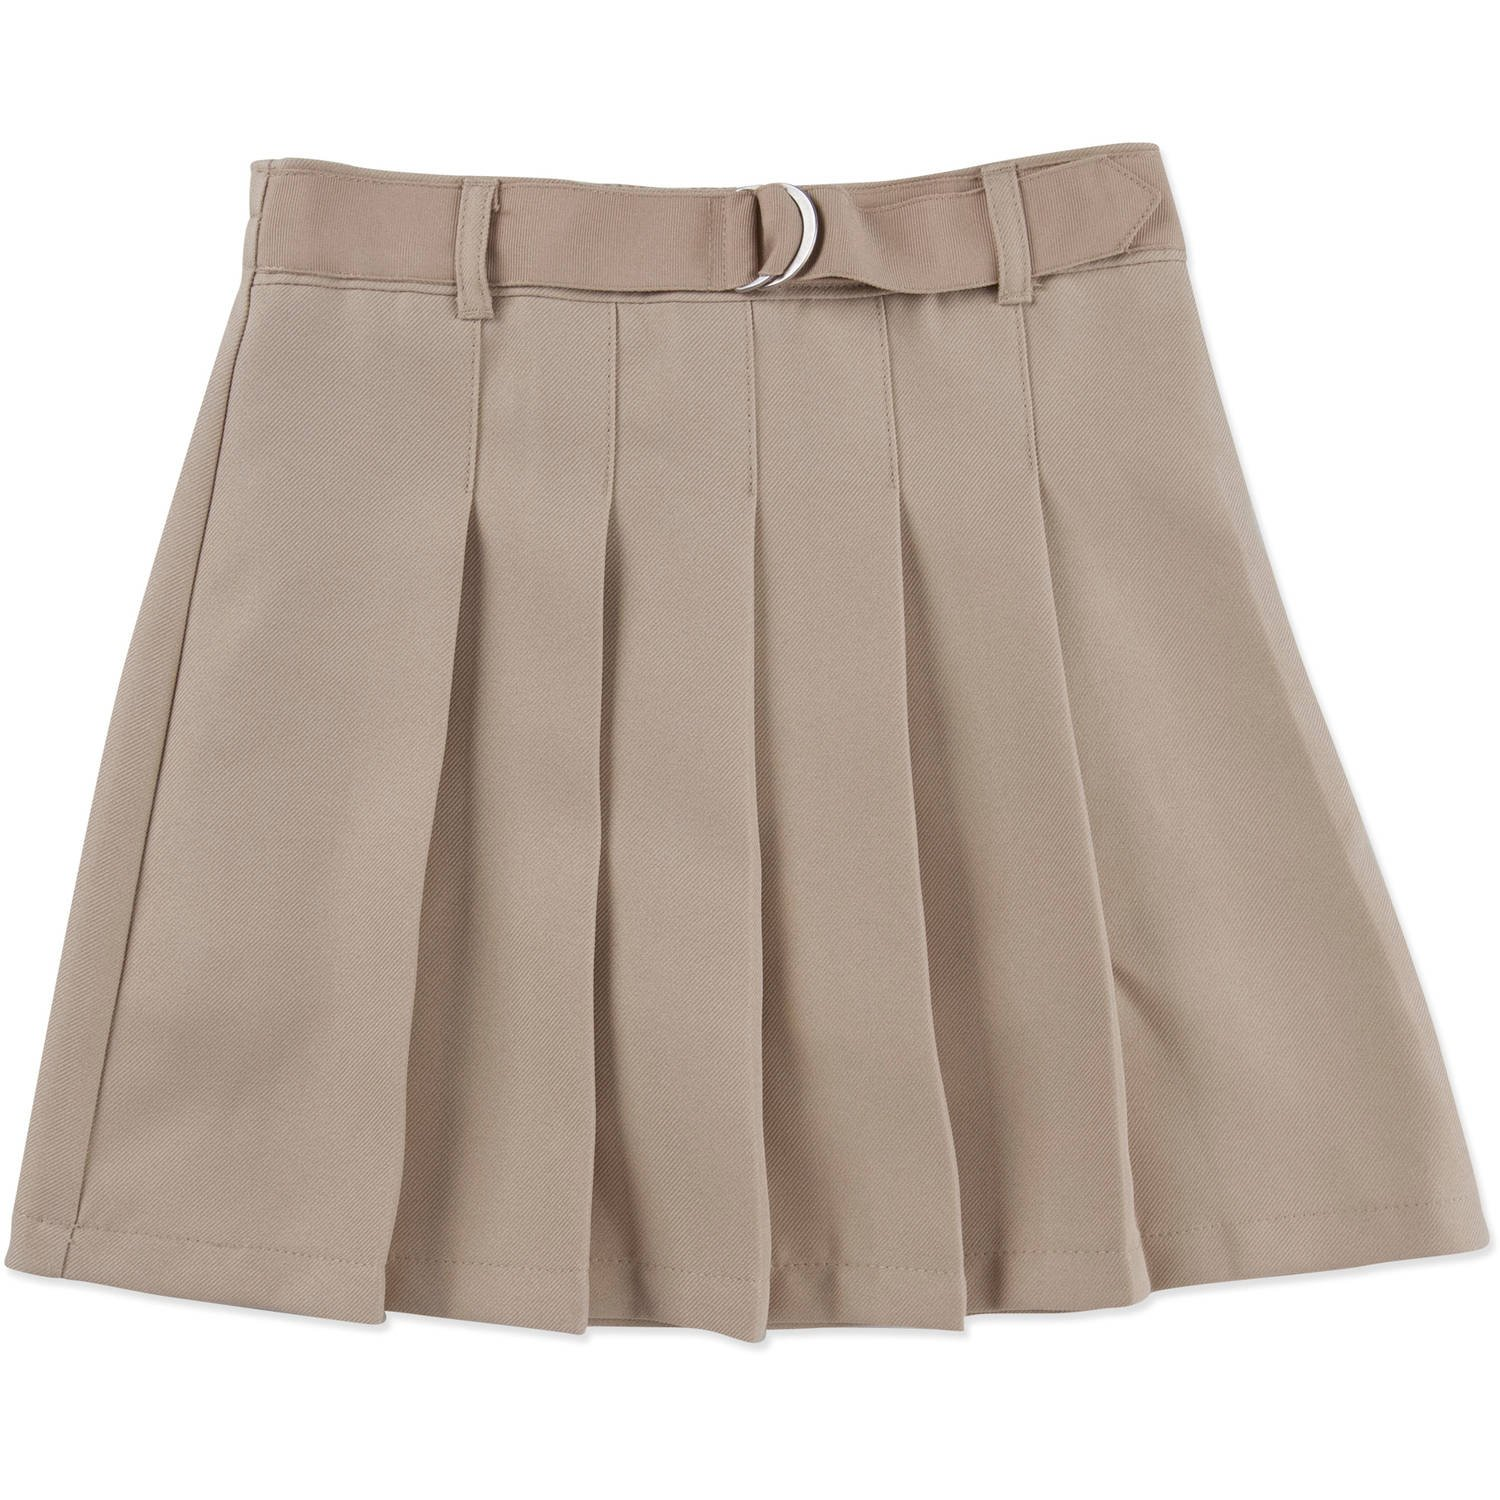 George Girls' School Uniform - Belted Pleated Scooter Skirt